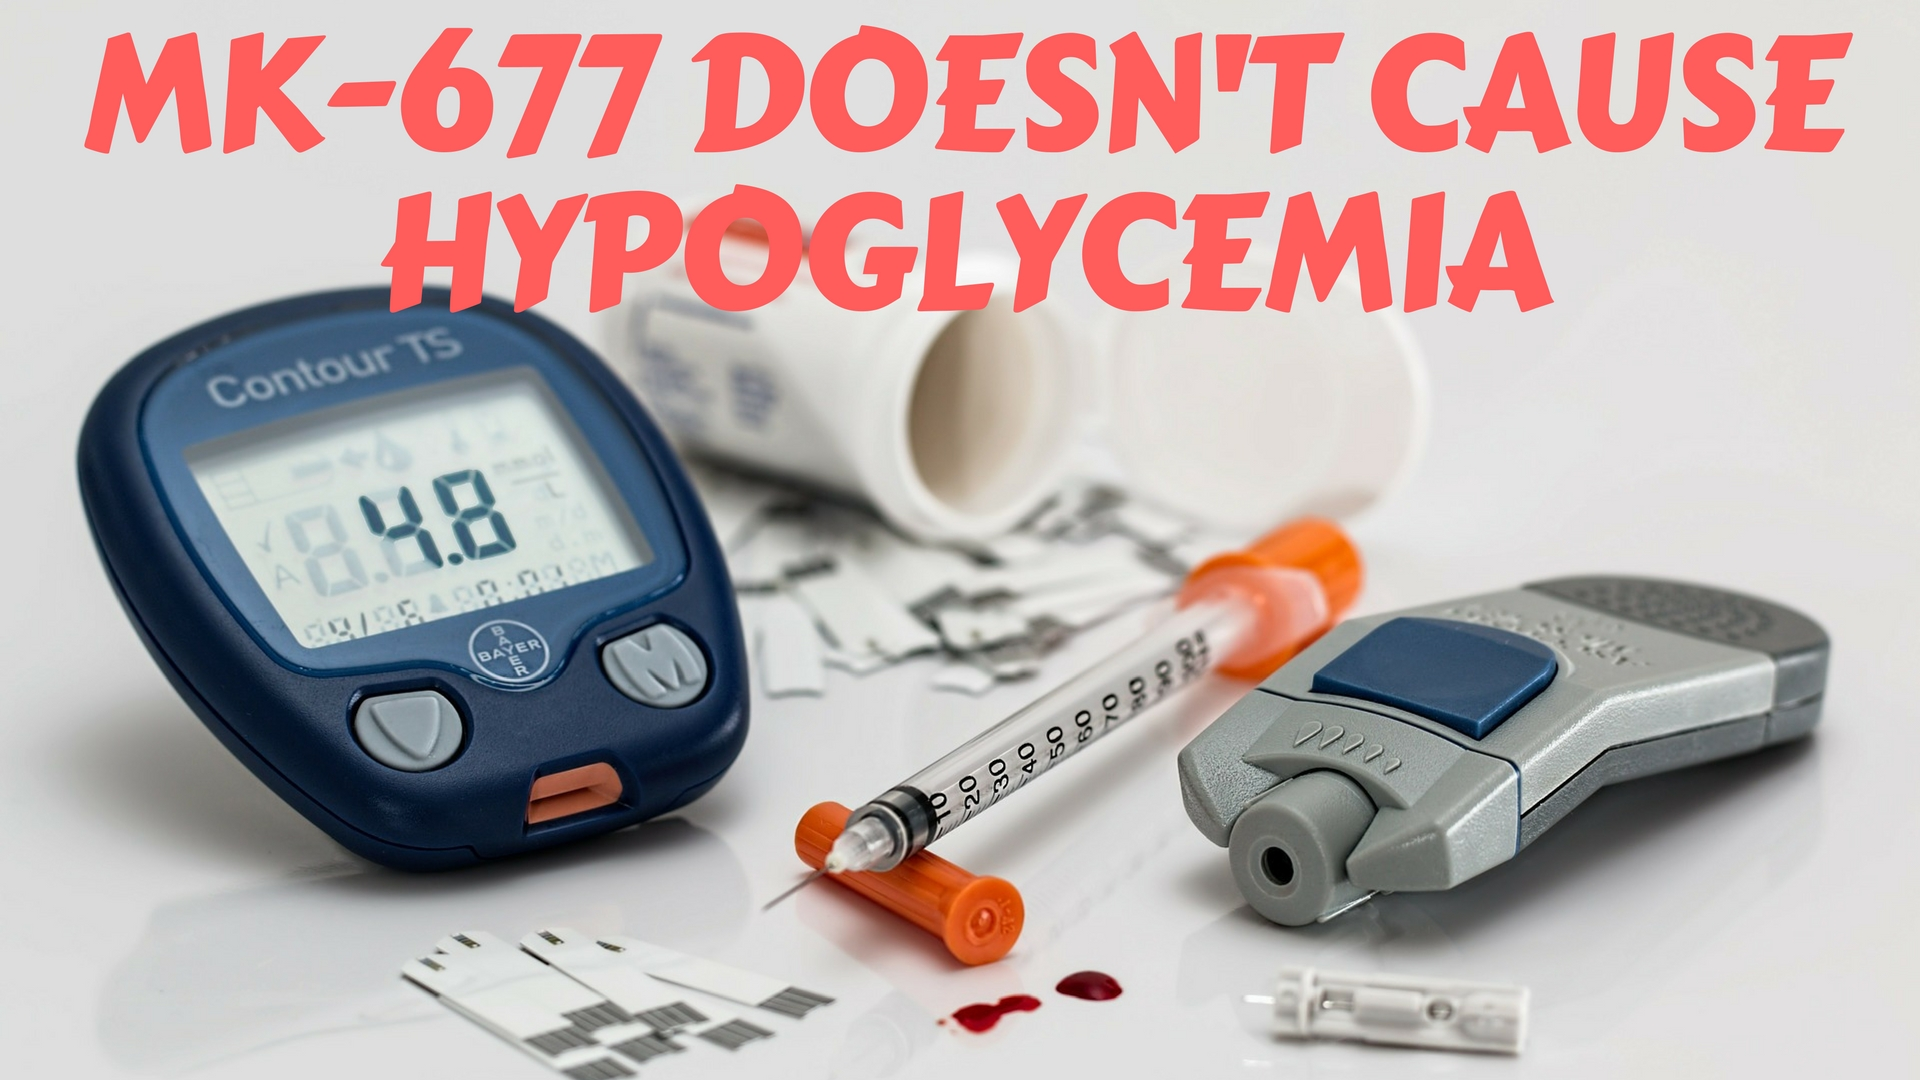 MK-677 Doesn't Cause Hypoglycemia - Reactive Hypoglycemia Explained